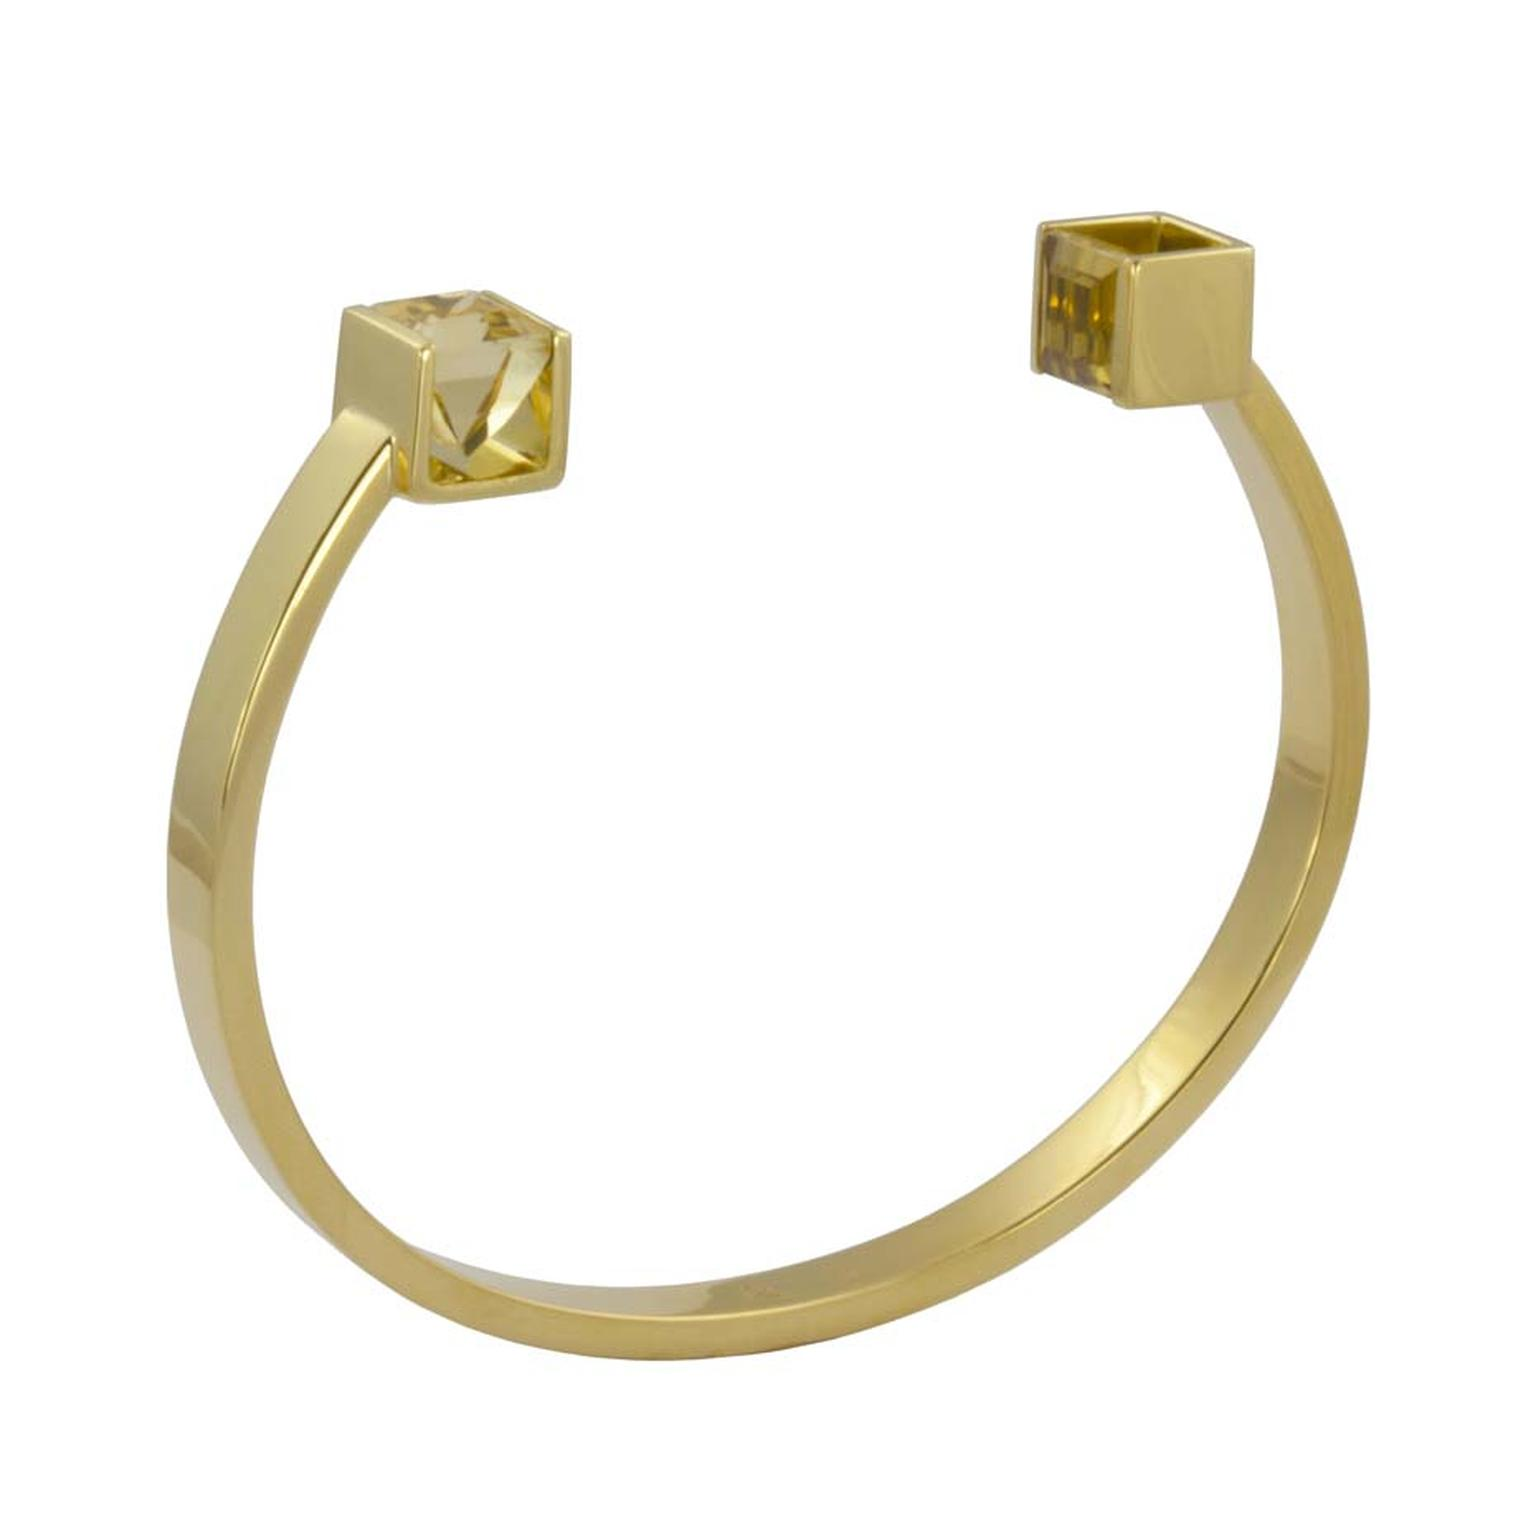 Kattri Quadrant yellow gold and citrine bracelet (£4,250).